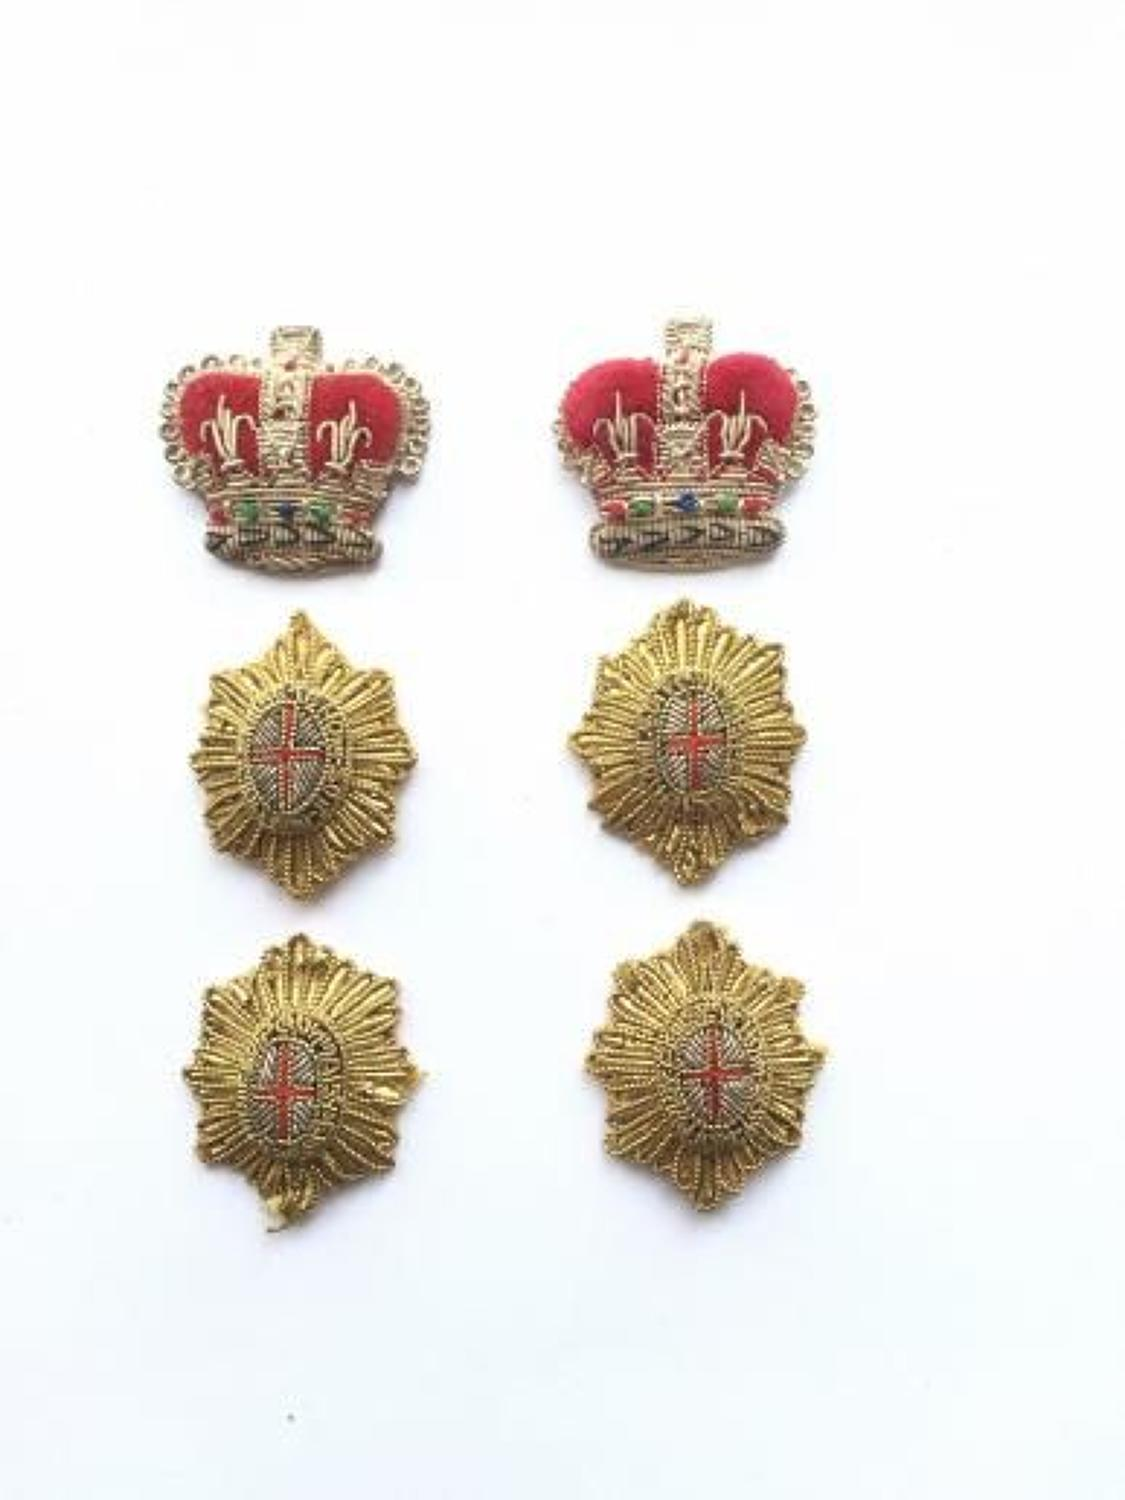 Household Cavalry Bullion Officer's Rank Insignia Badges.